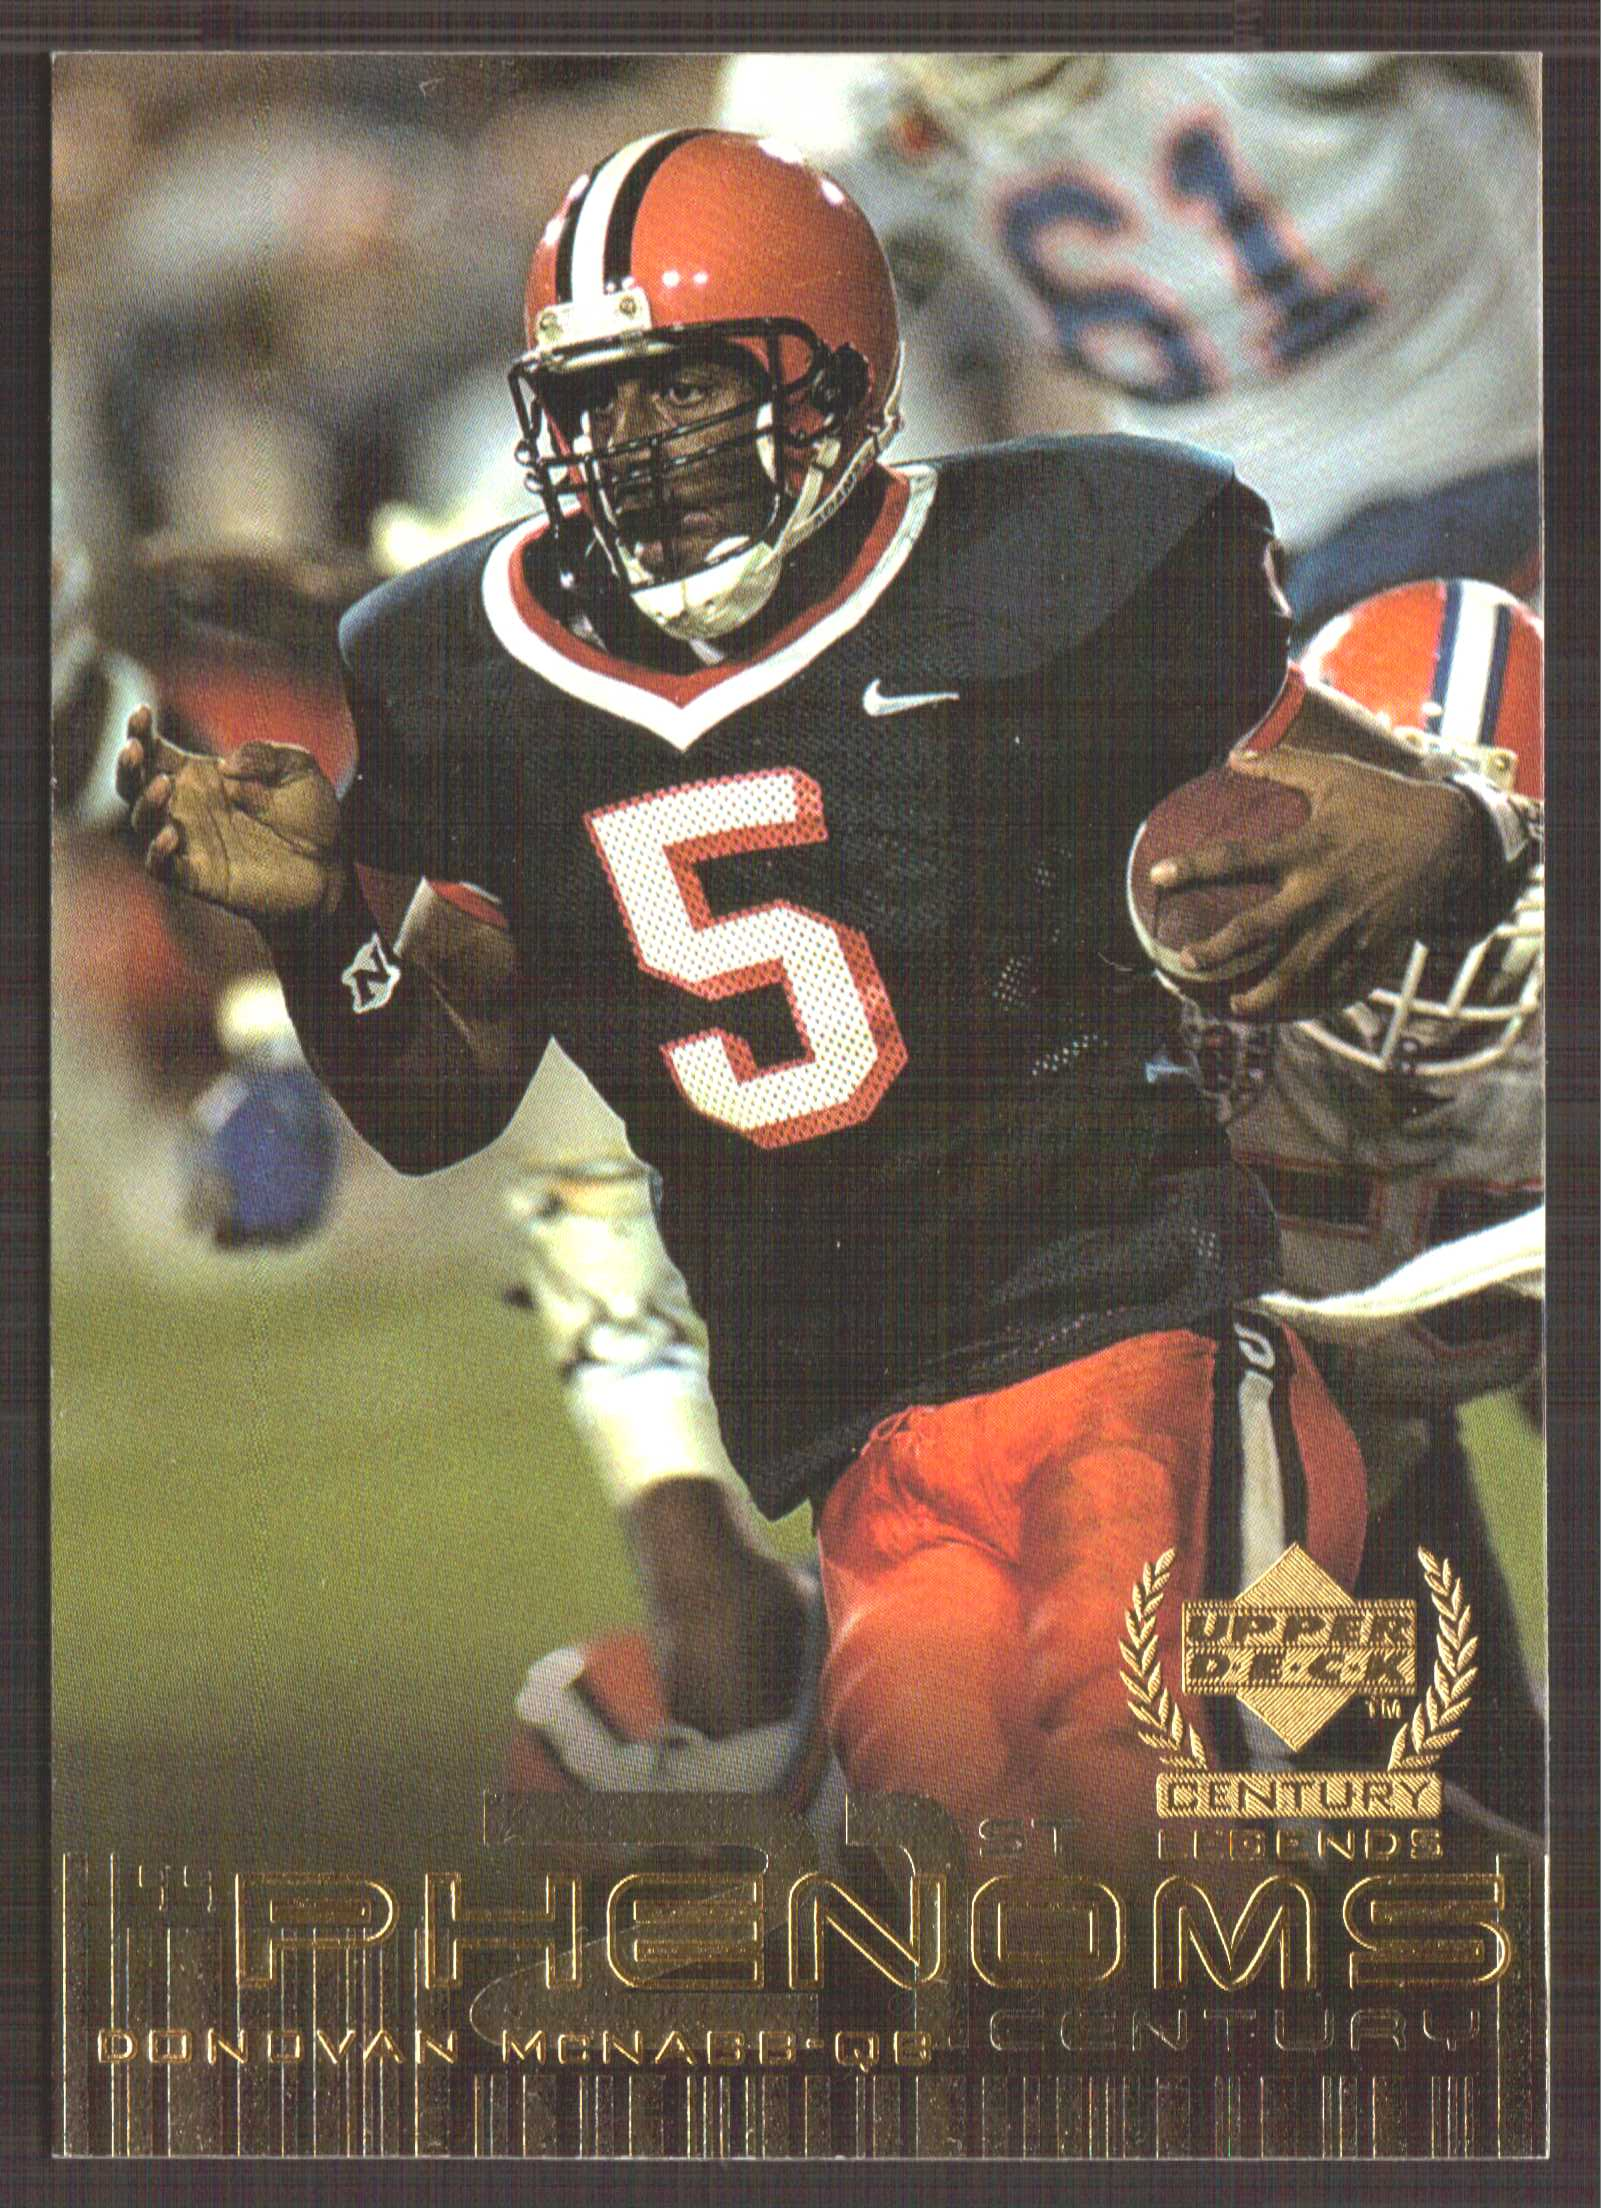 1999 Upper Deck Century Legends #133 Donovan McNabb RC